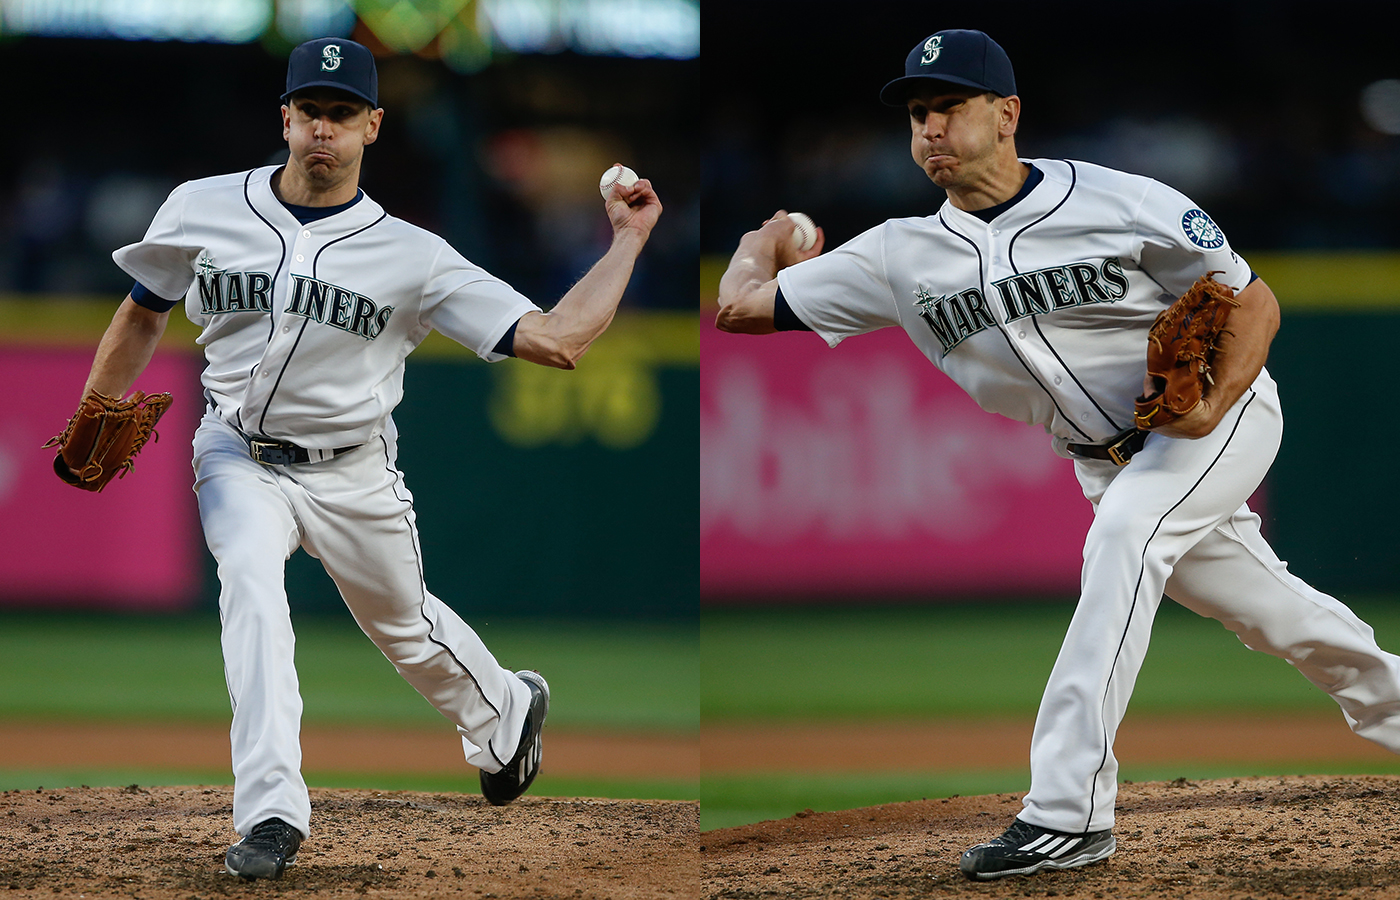 If reports are to be believed, baseballer Pat Venditte can not only pitch with both arms but can also pitch on land and water